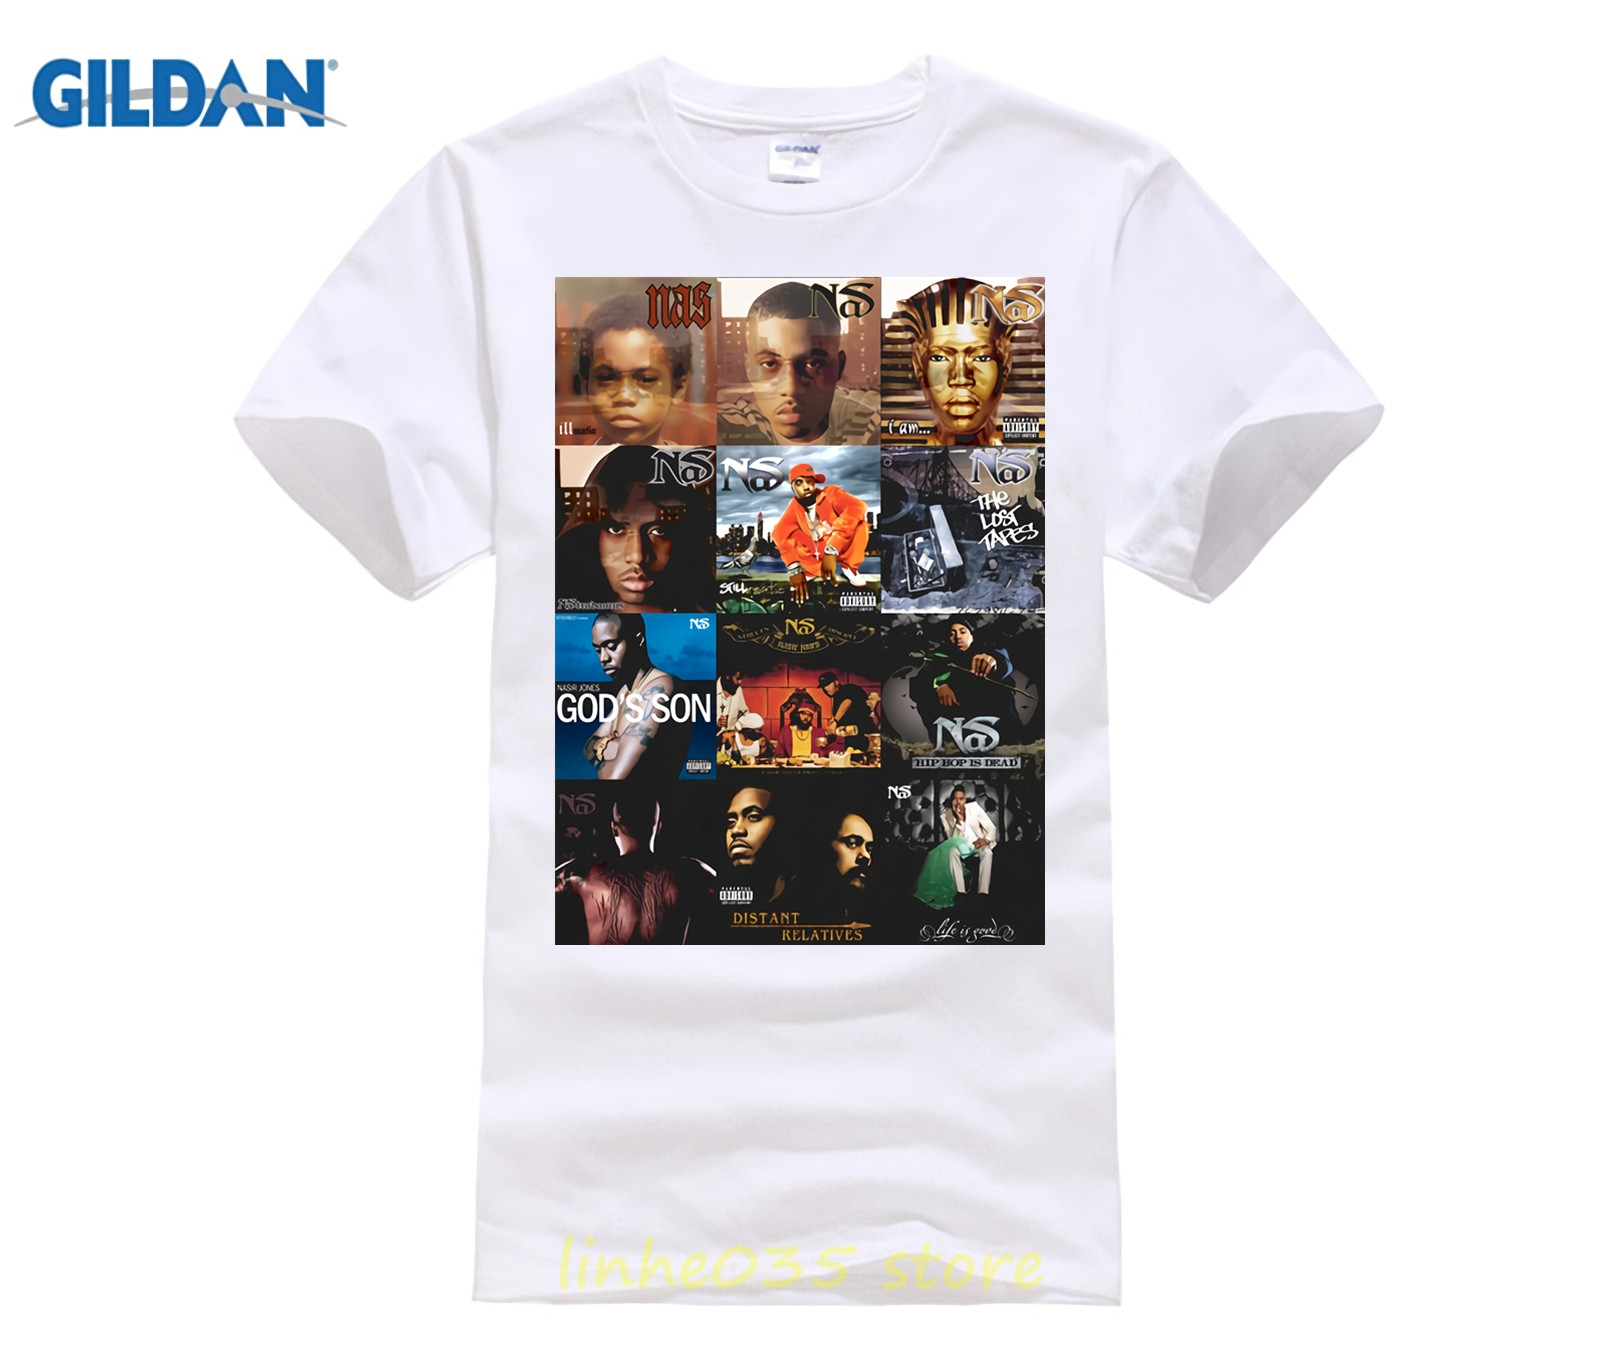 T-shirts Back To Search Resultsmen's Clothing Summer Style Hip Hop Men T-shirt Tops Genco Import Co Olive Oil The Godfather Trilogy Vito Michael Corleone Ny T Shirt High Quality